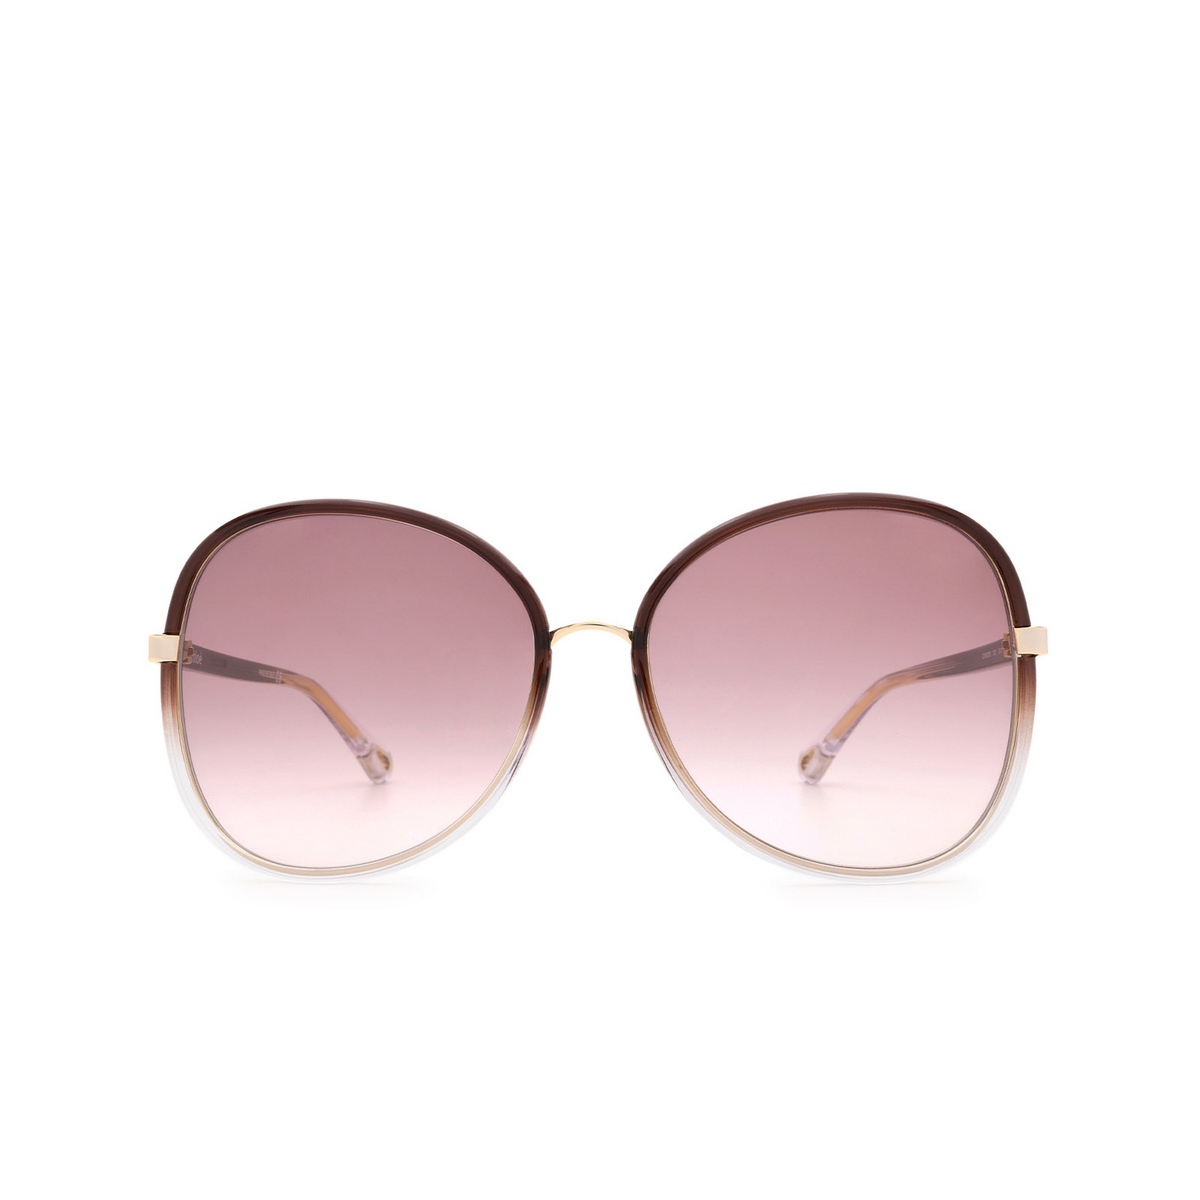 Chloé® Butterfly Sunglasses: CH0030S color Brown 003 - front view.